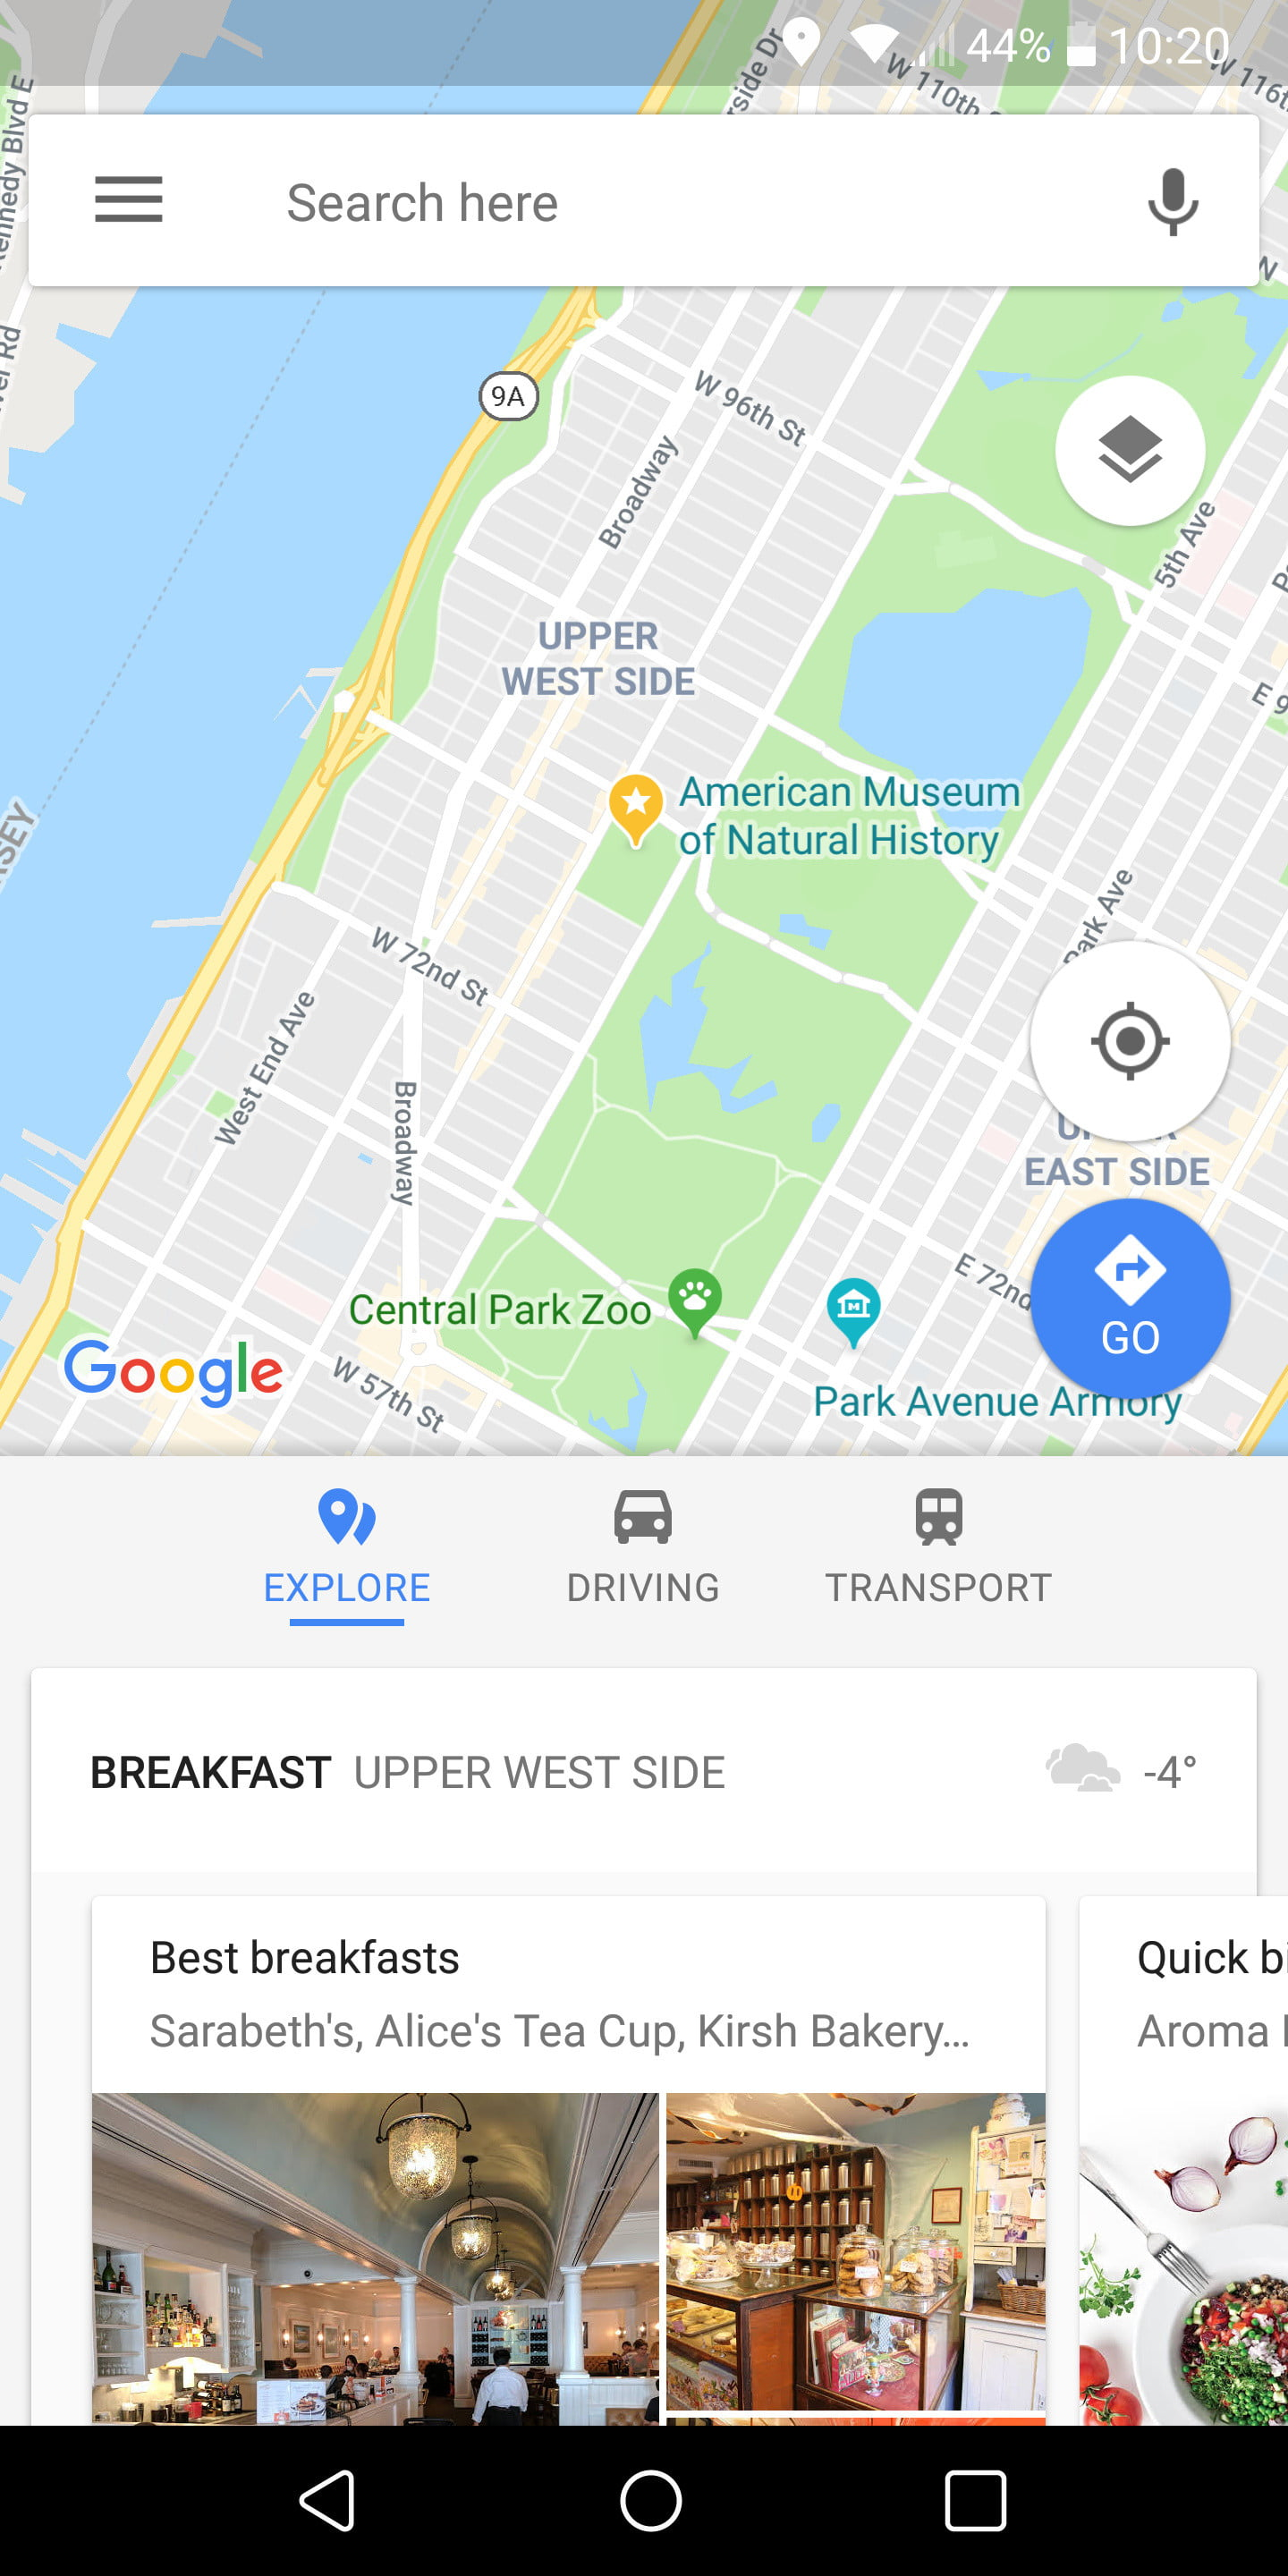 How to Use Google Maps | Digital Trends You Google Maps on topographic maps, iphone maps, bing maps, gogole maps, android maps, online maps, gppgle maps, ipad maps, googie maps, googlr maps, msn maps, goolge maps, stanford university maps, microsoft maps, waze maps, road map usa states maps, aerial maps, search maps, amazon fire phone maps, aeronautical maps,